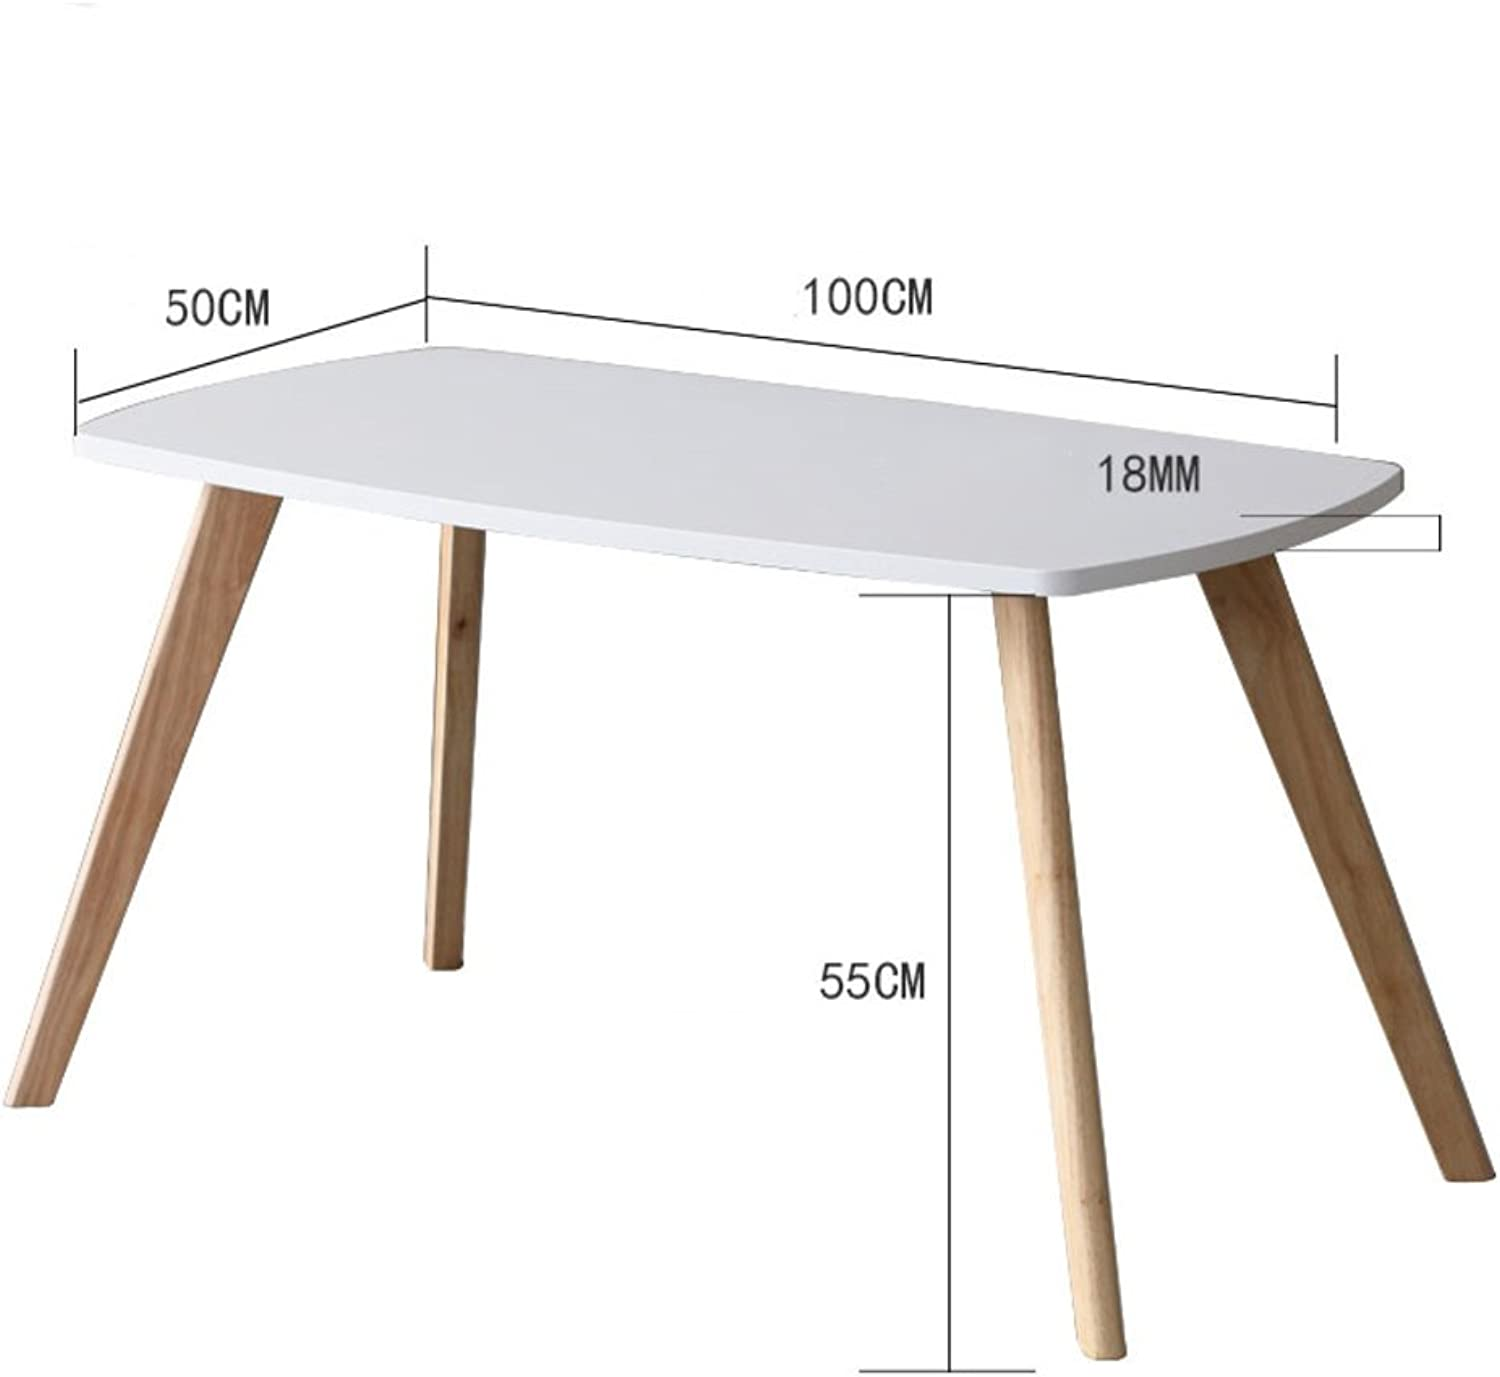 Solid Wood Rectangle Sofa Table, Living Room Decoration Side Table Coffee Table Bedroom Night Table Telephone Table-White L100xW50xH55cm